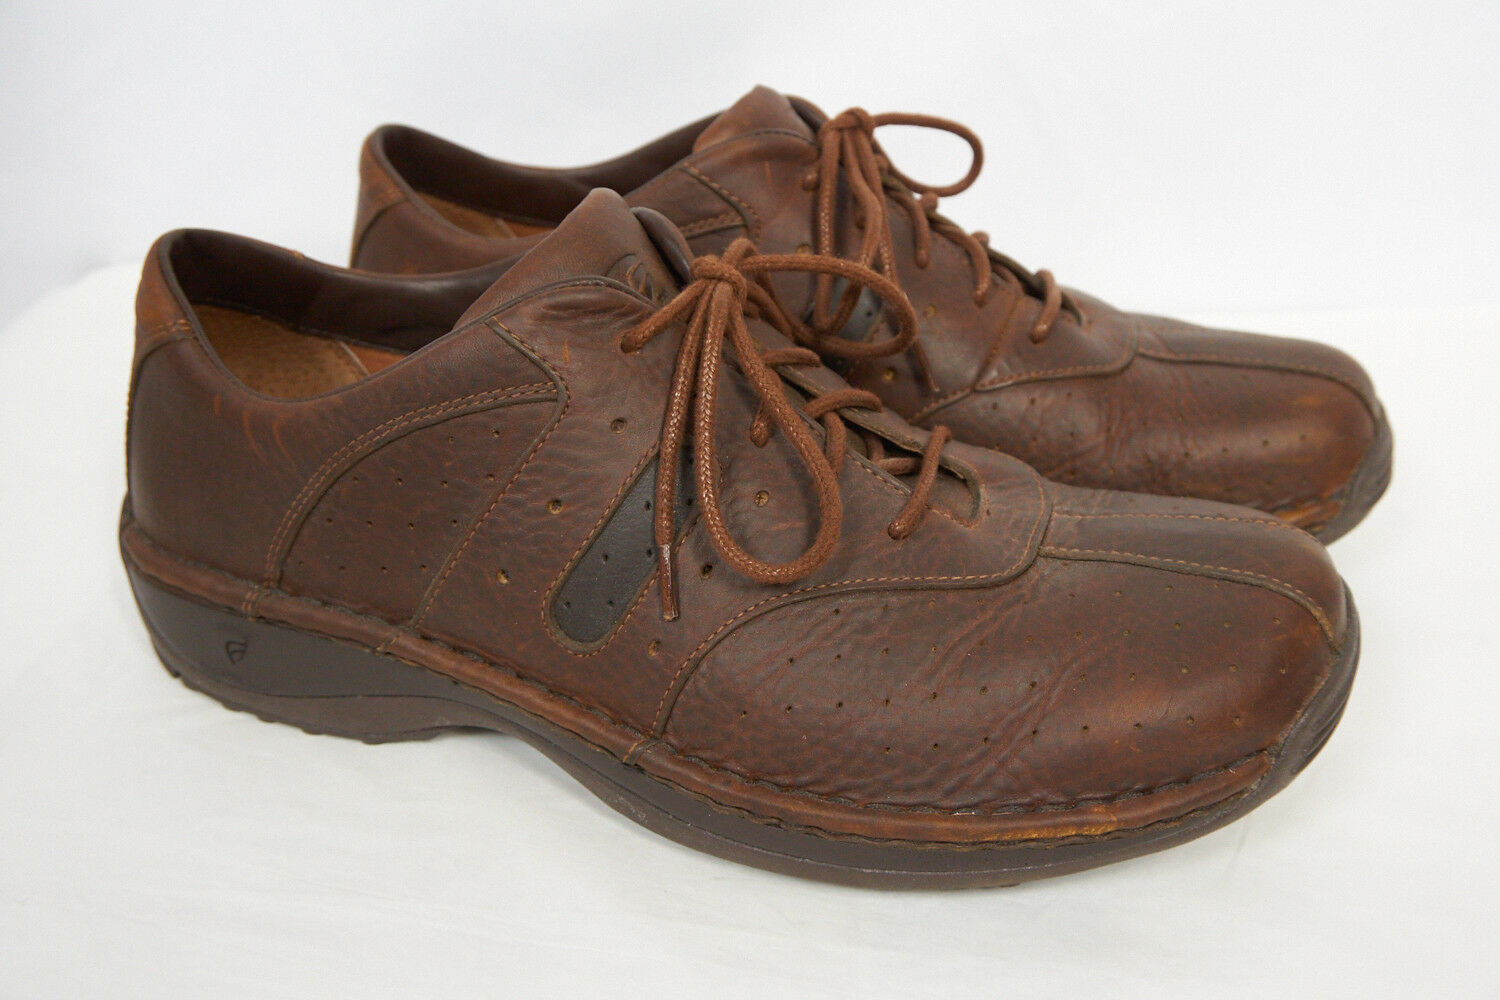 RED WING Alley 4031 Saffron Brown Leather Casual Comfort Oxford shoes Men 11.5 EE